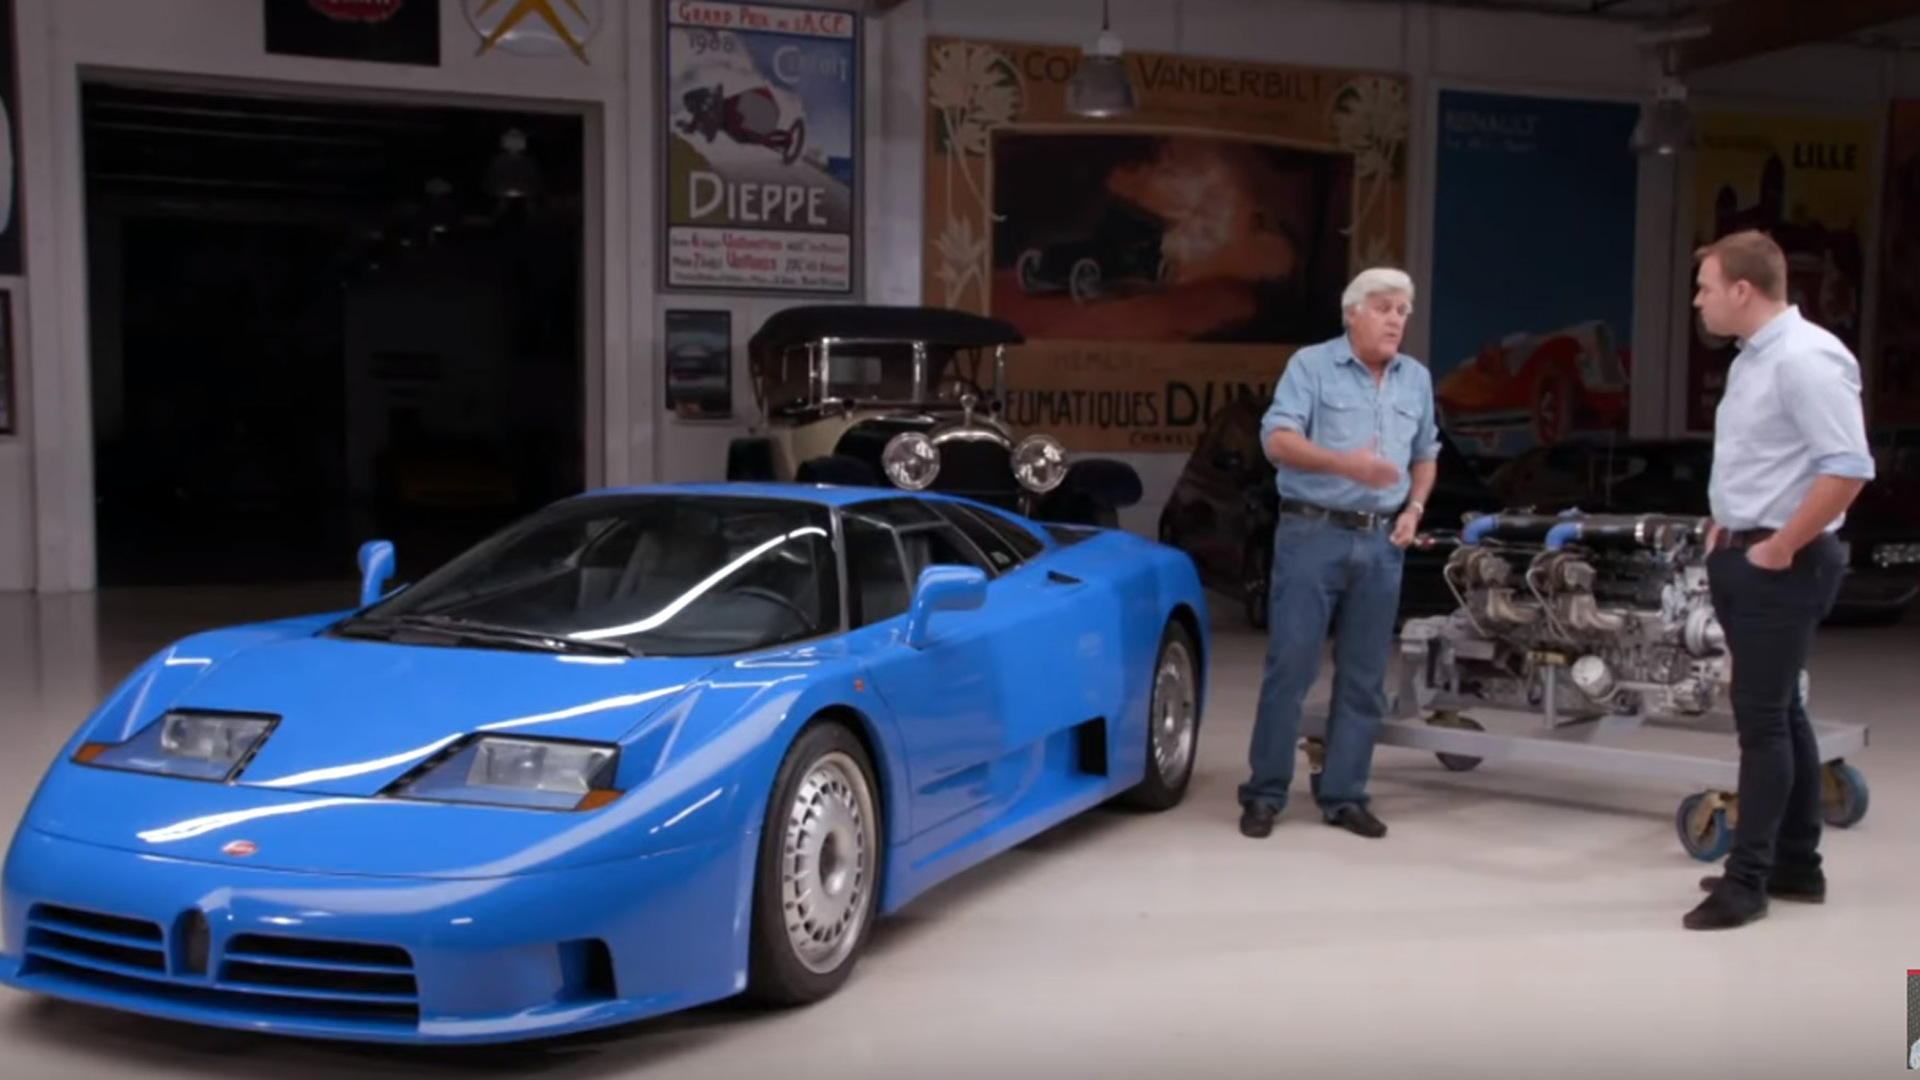 Garage Volkswagen Dieppe Before The Veyron There Was The Eb110 Jay Leno Looks Back At